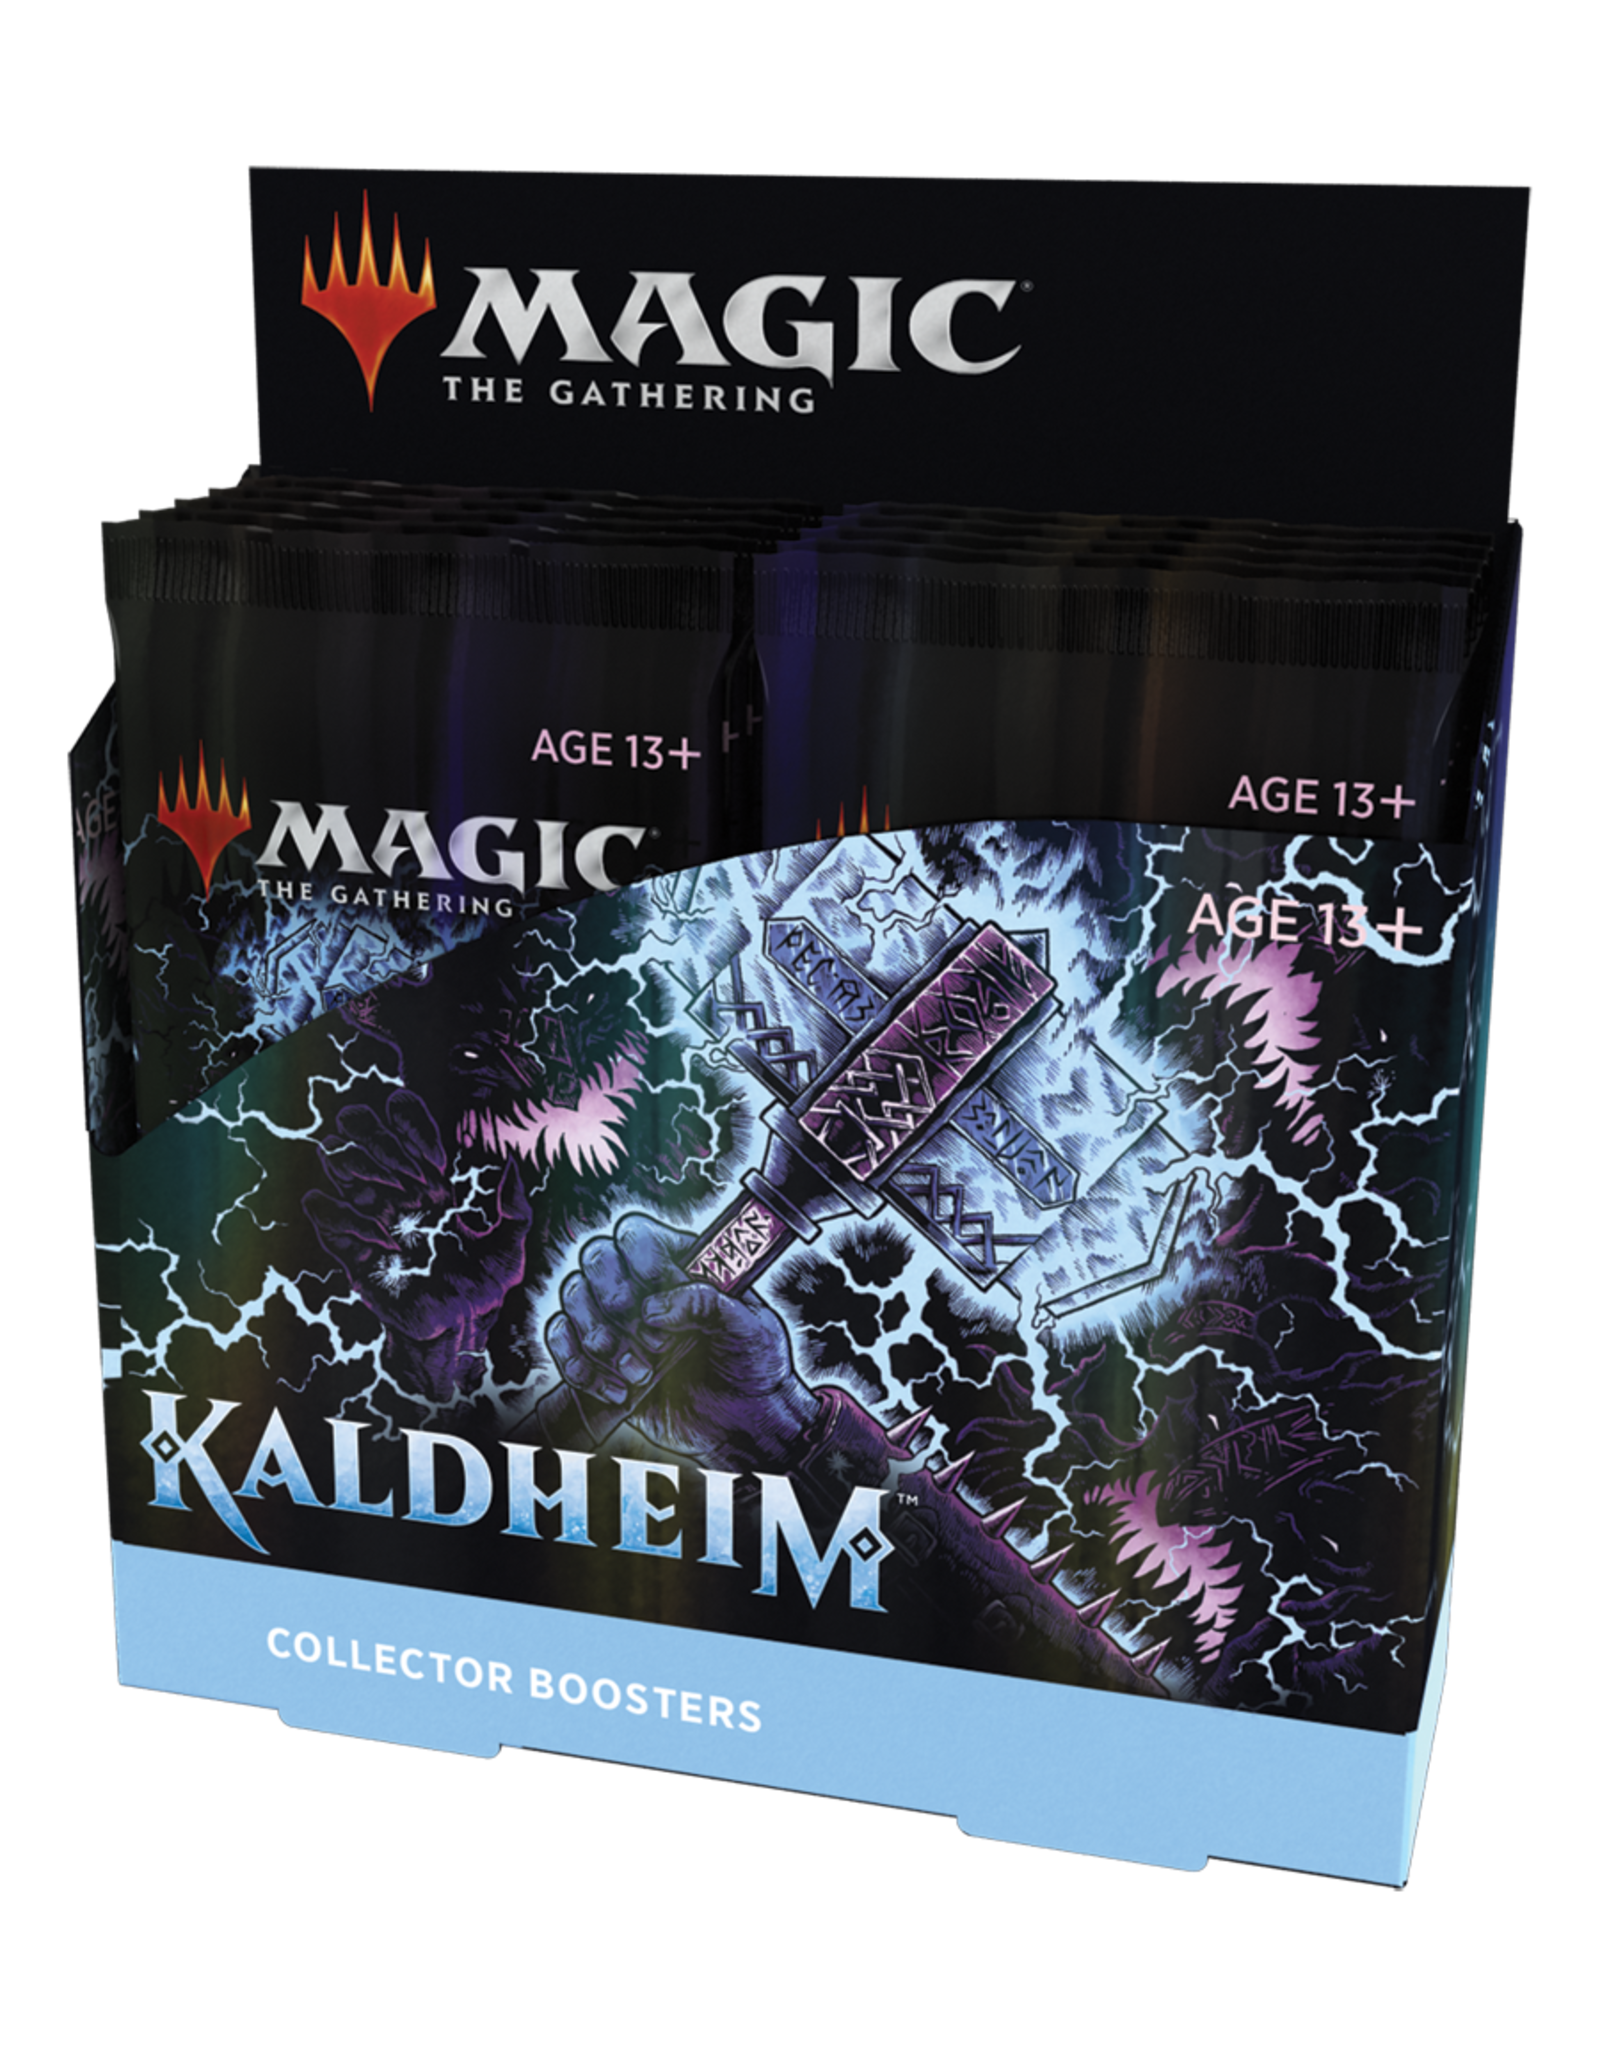 Magic: The Gathering Magic: The Gathering - Kaldheim Collector Booster Box